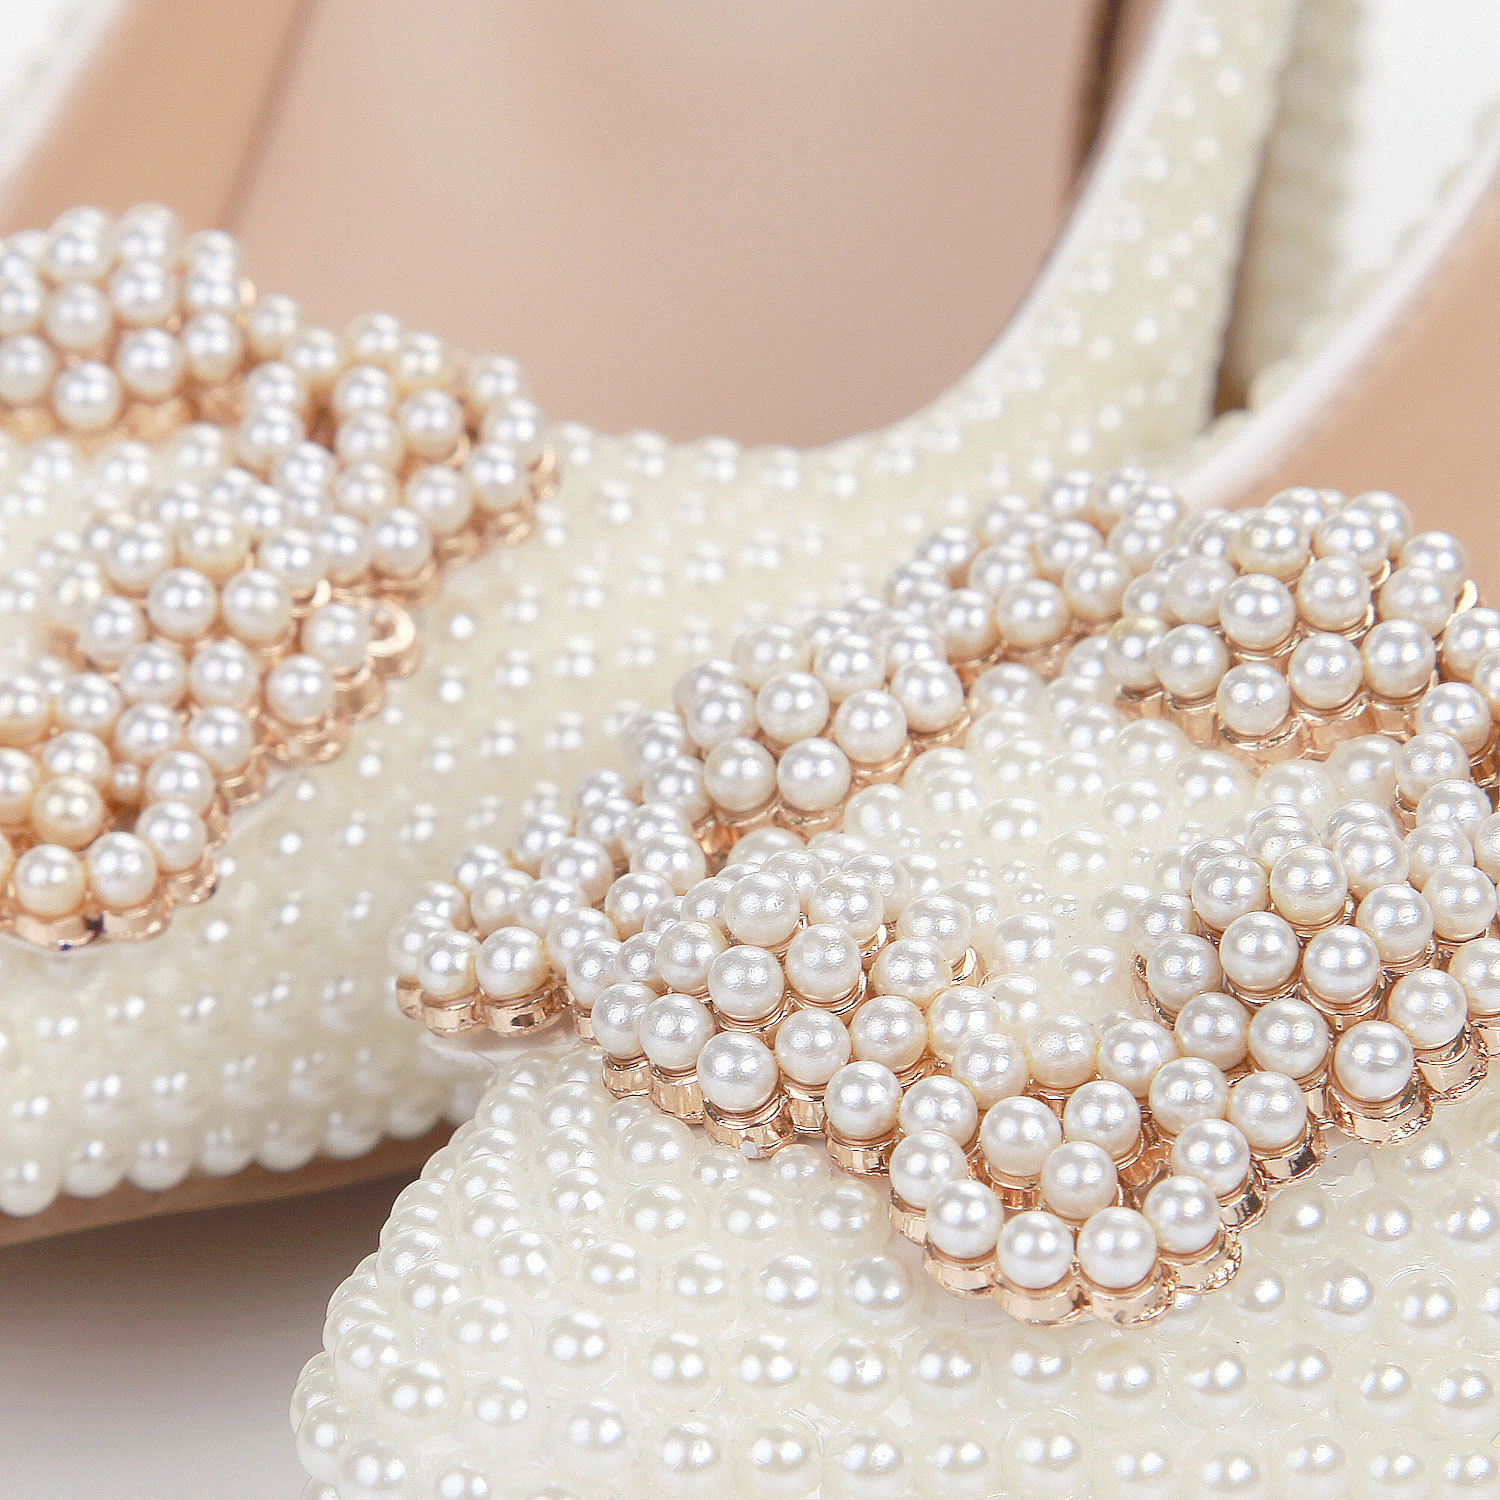 Soft Pearl White Pointed High Heels Crystal Marriage Shoes High-Heel Platform Shoes Wedding Formal Dress Single Shoes